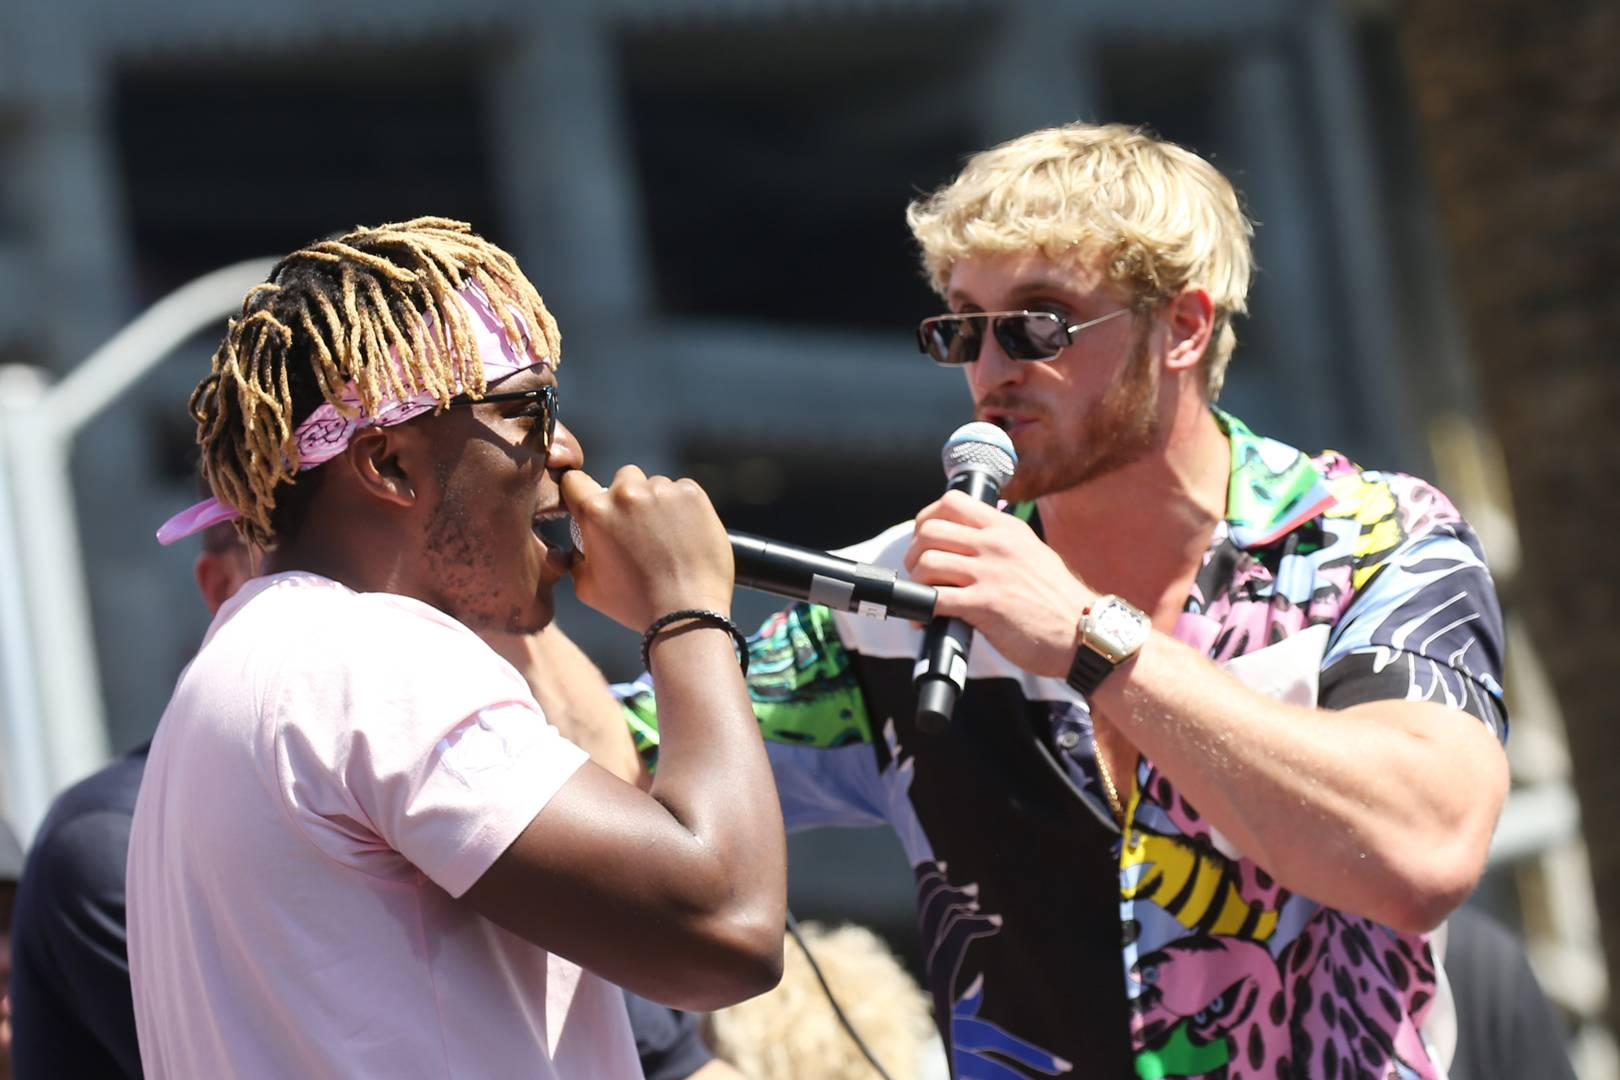 Here's why you should care about the KSI vs Logan Paul rematch